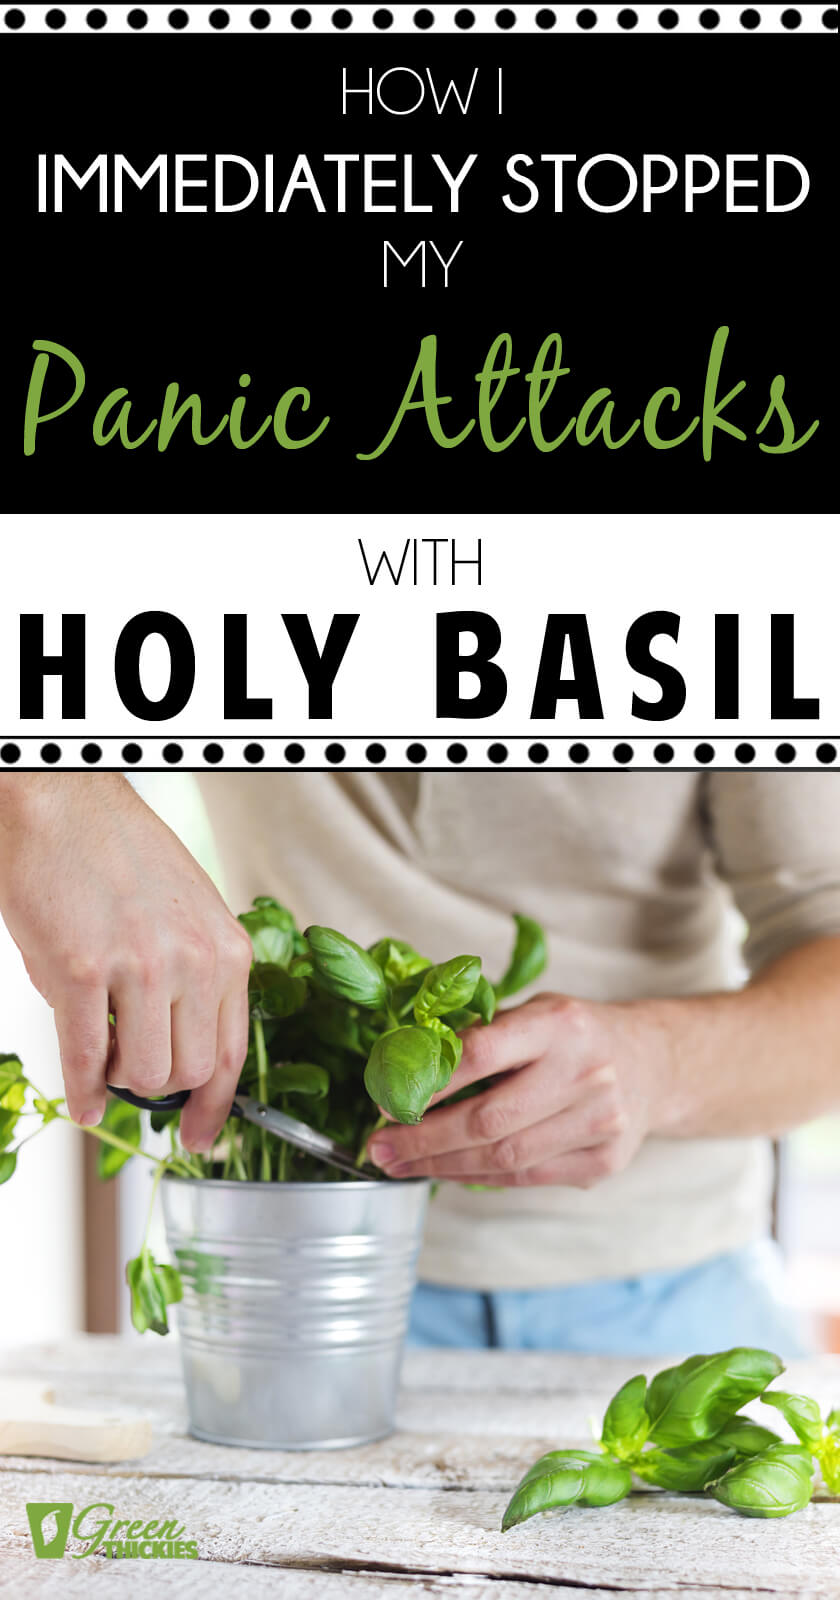 My anxiety and panic attacks had got to an extremely bad level.  Read about how I immediately stopped my anxiety with Holy Basil.I also share how I transitioned off Holy Basil and the other things that worked to heal the rest of my health problems.#greenthickies #anxiety #anxietyrelief #holybasil #panicattacks #stopanxiety #stoppanicattacks #anxietycures #holybasilbenefits